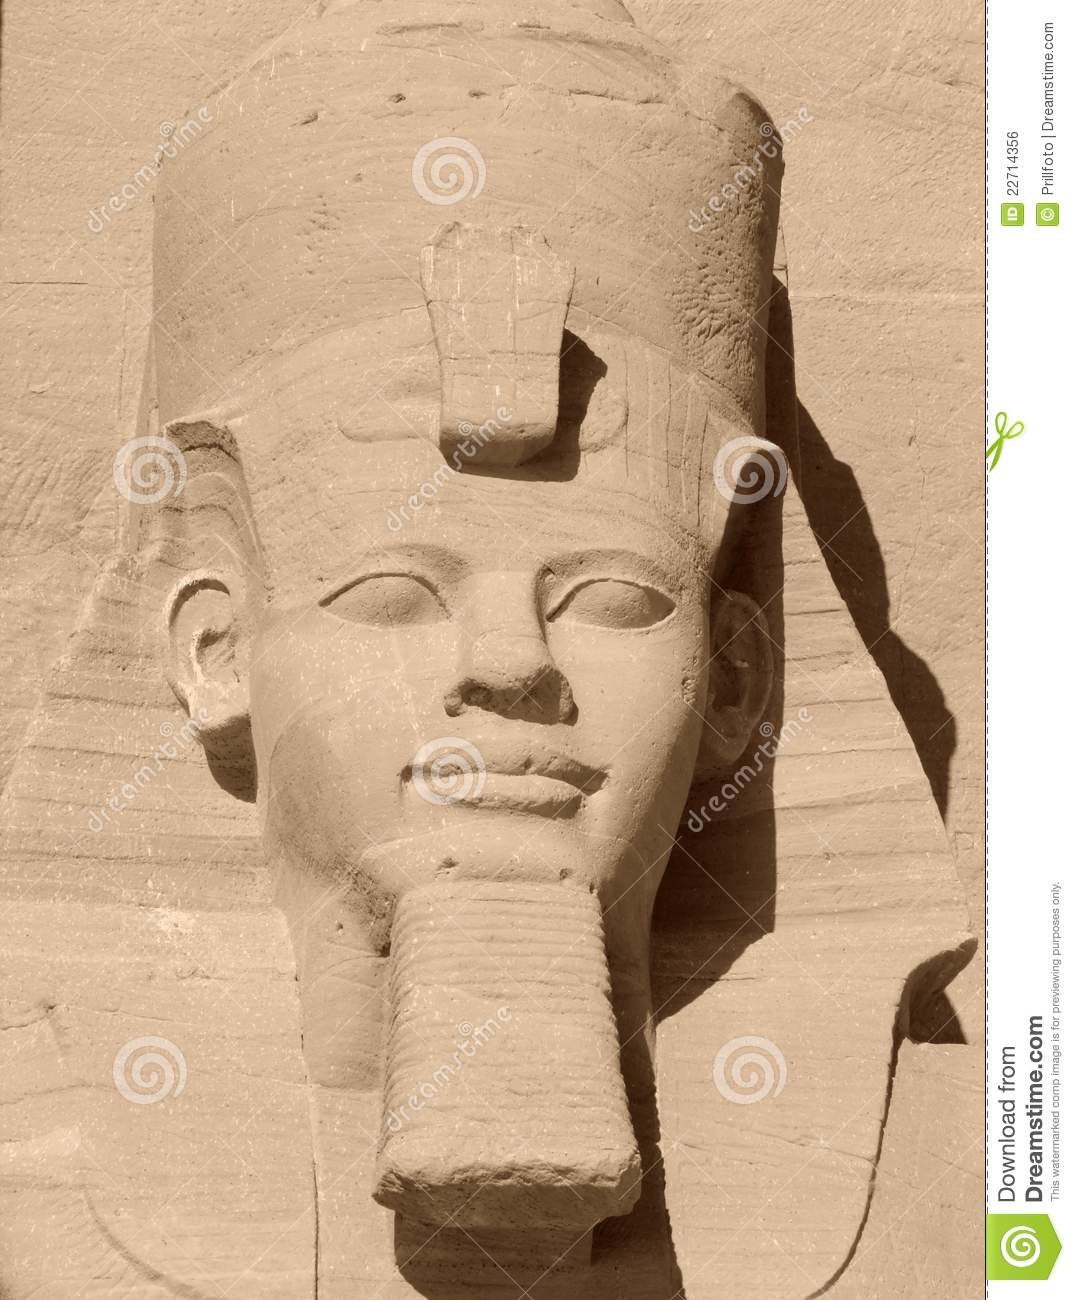 Sunny detail of a ancient stone sculpture showing Ramses 2nd in Egypt.